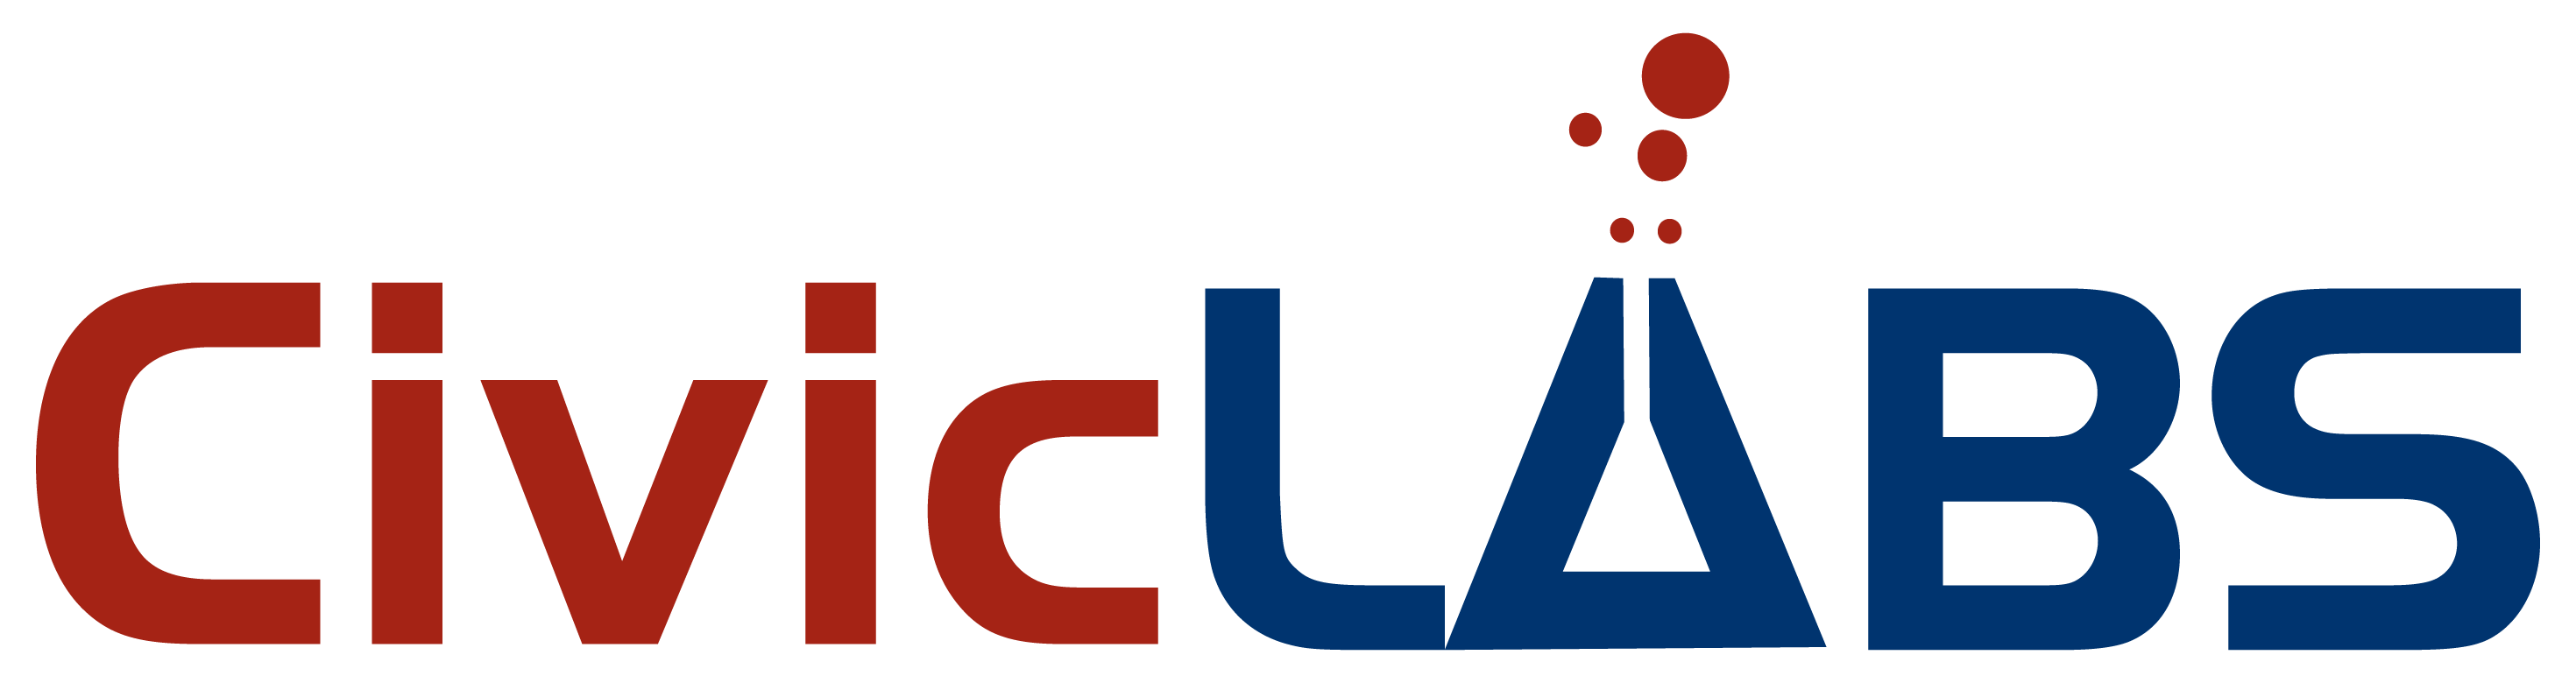 CivicLabs